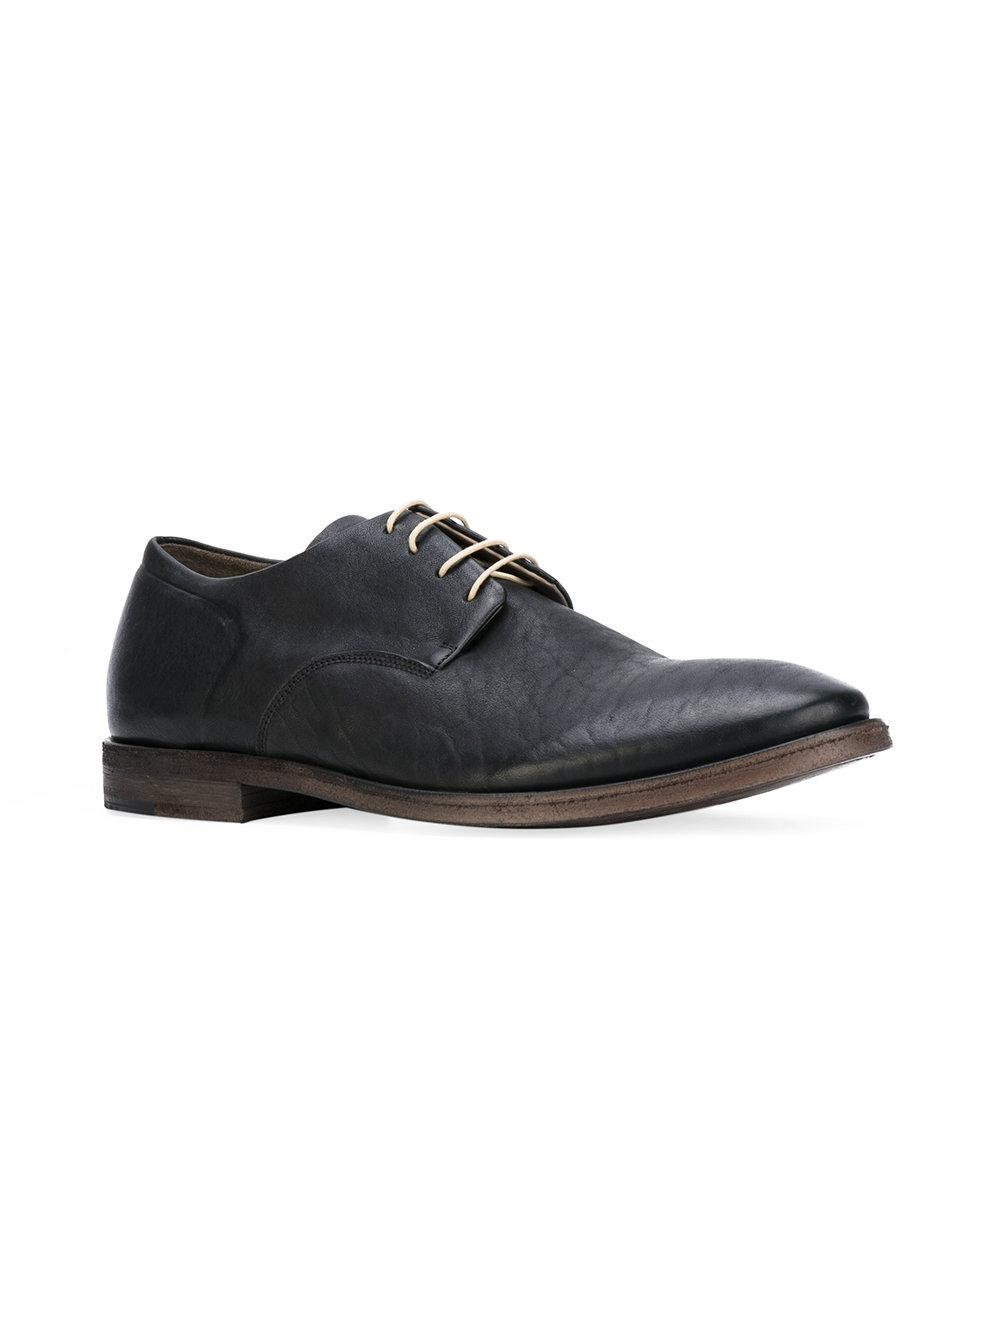 Del Carlo classic Derby shoes fake sale online sale geniue stockist huge surprise N9tno4